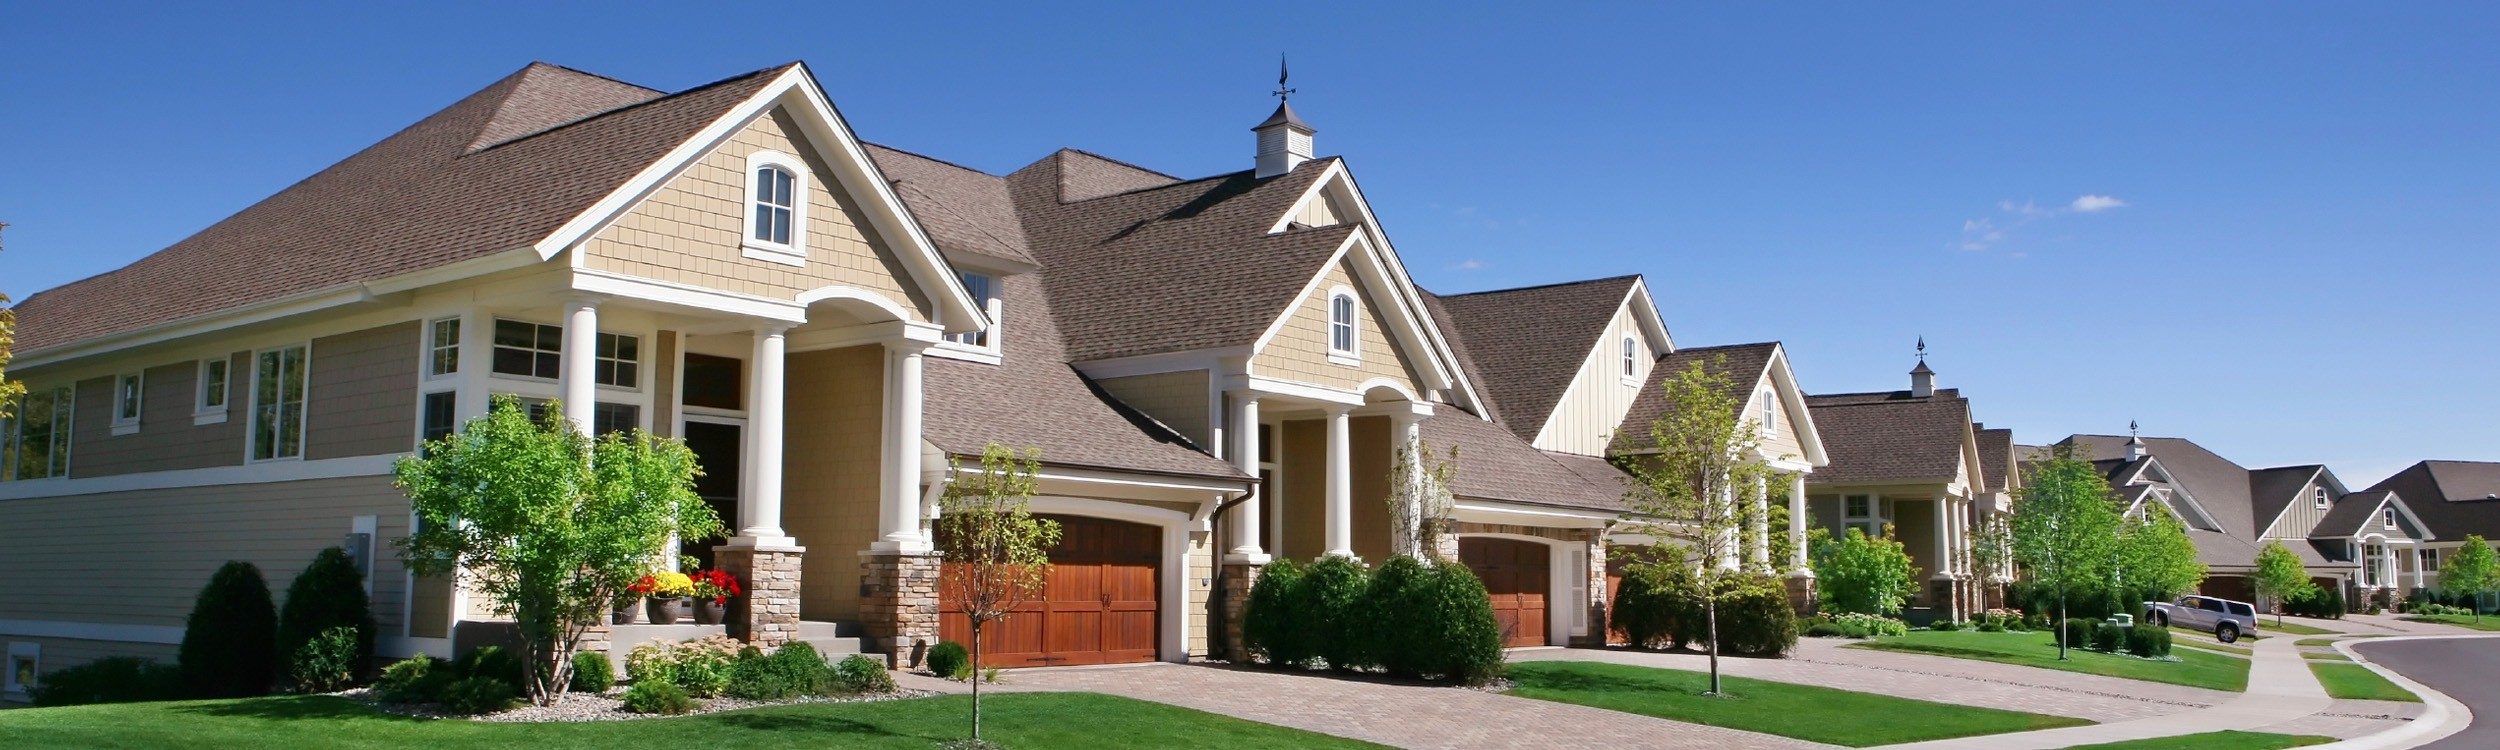 row of homes in subdivision